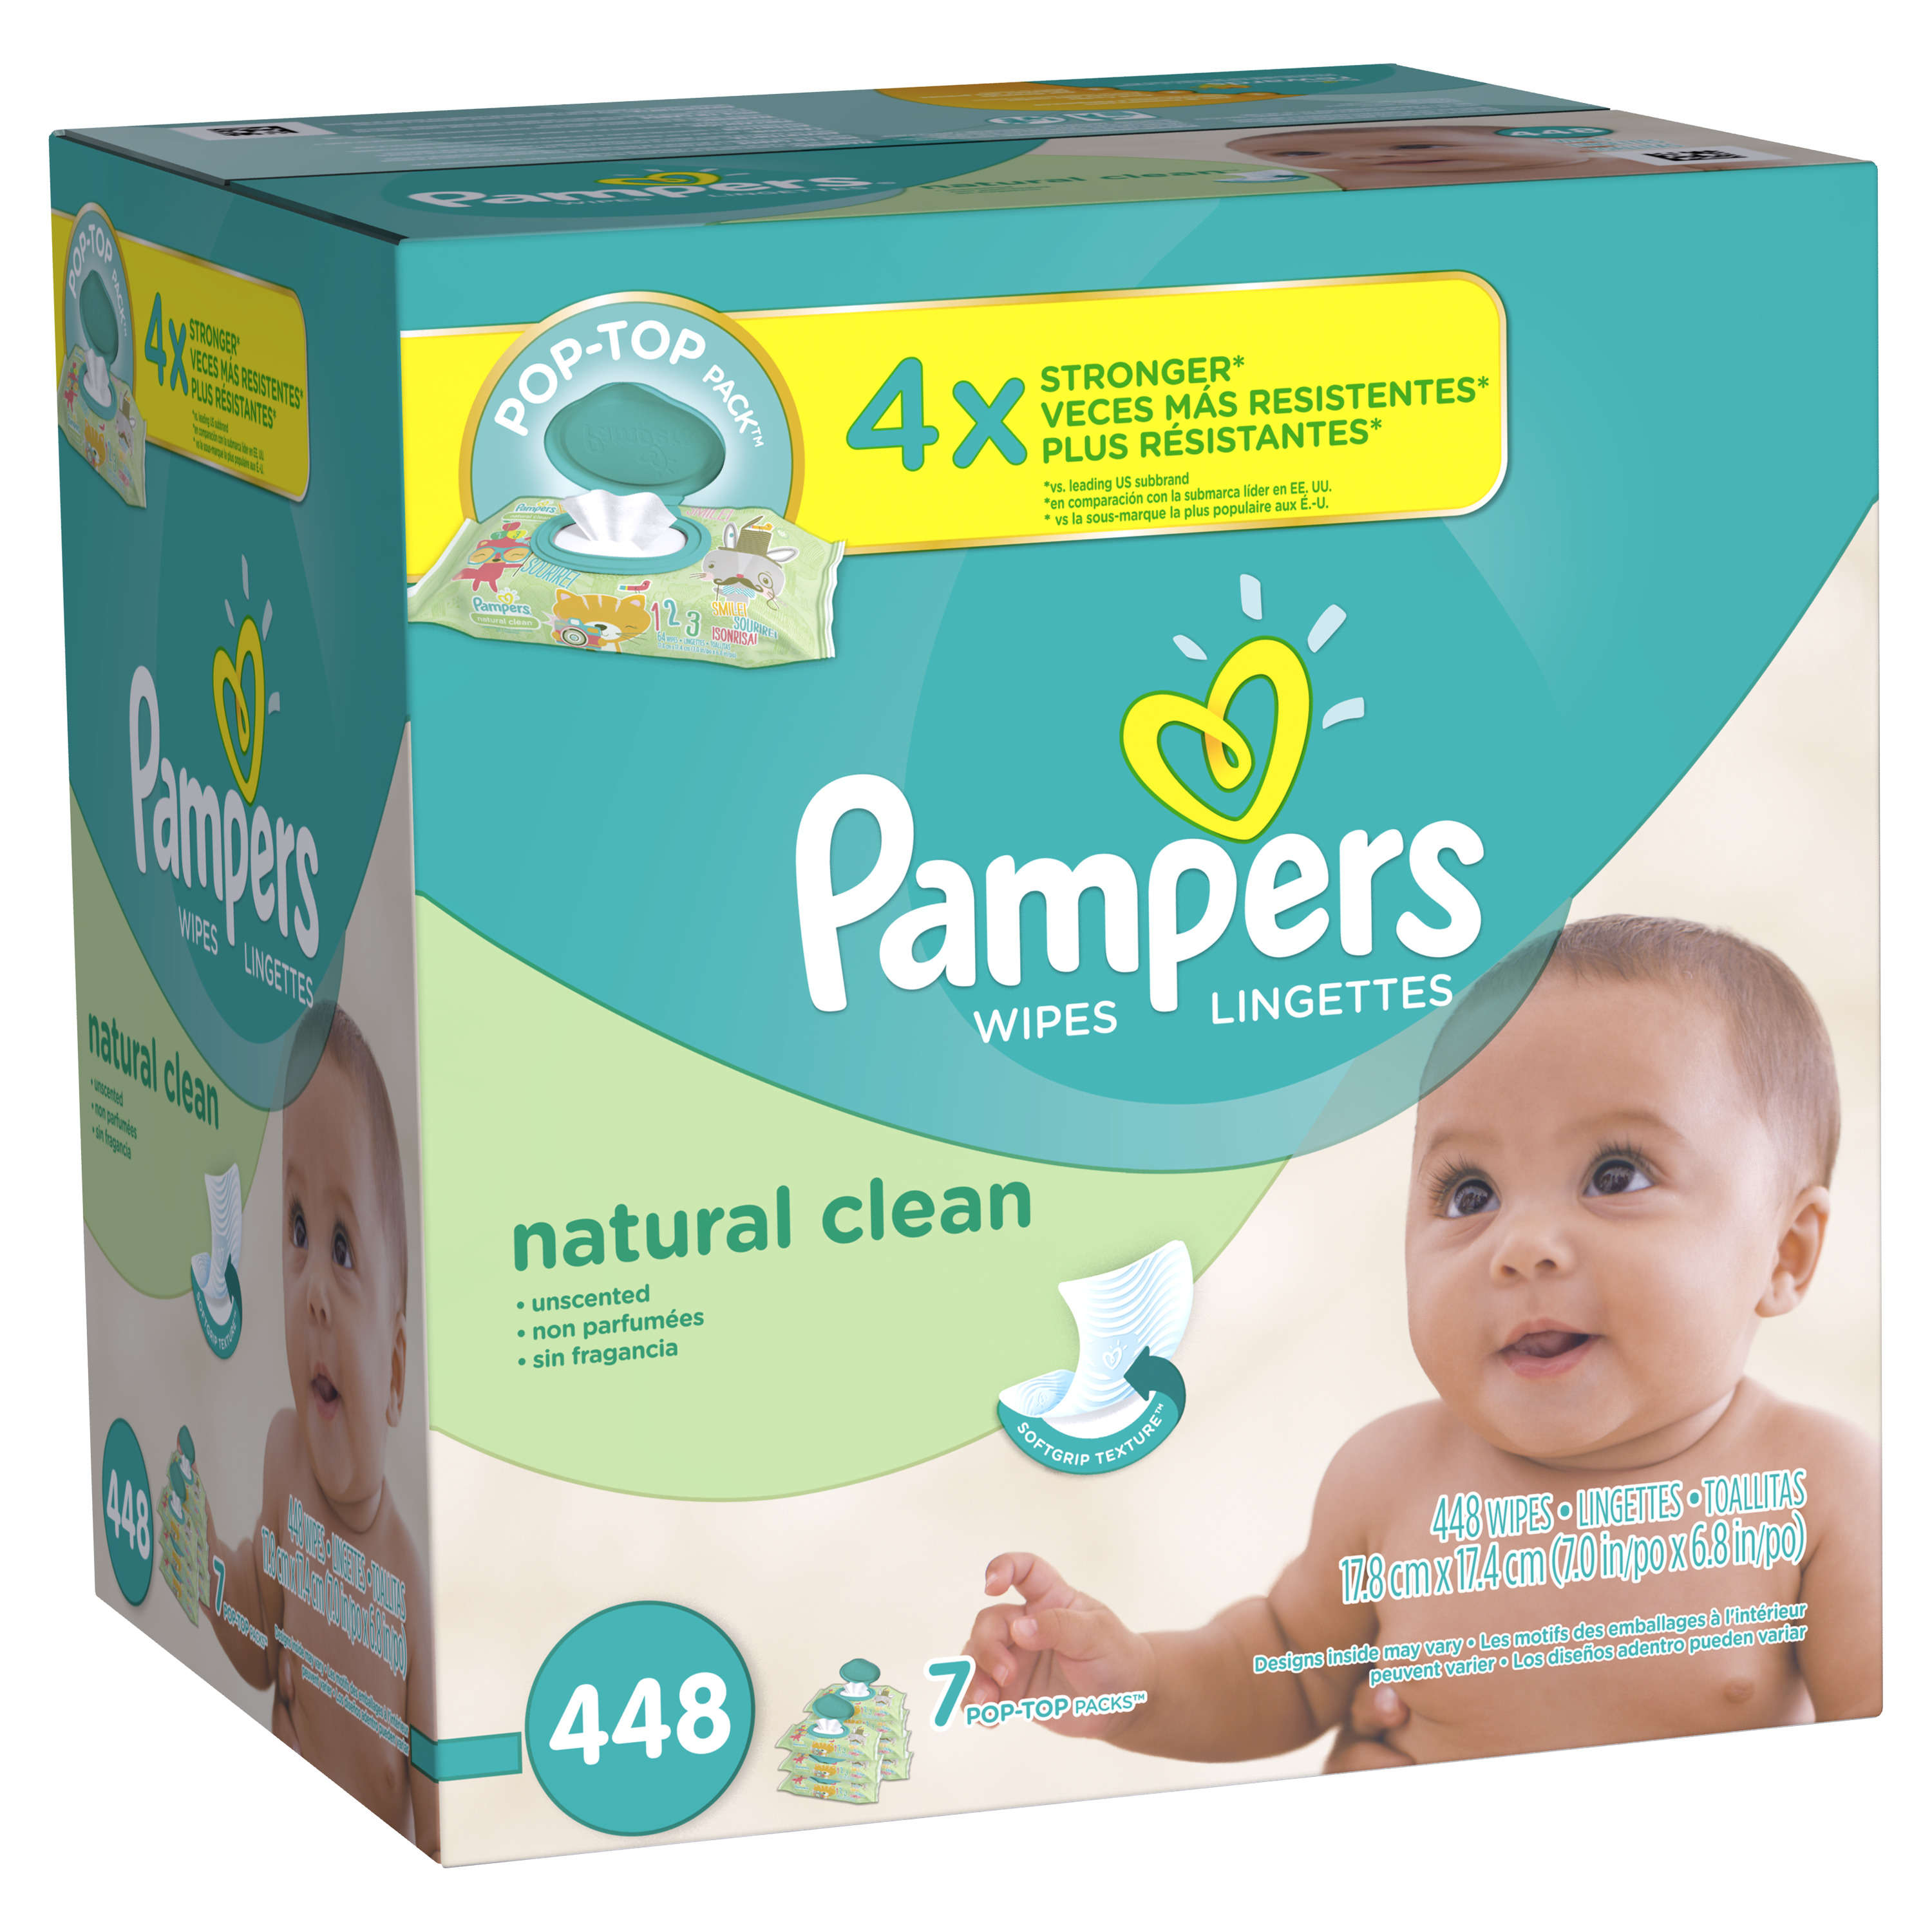 Pampers Natural Clean Baby Wipes, Unscented, 7 Pop-Top packs of 64 (448 count)